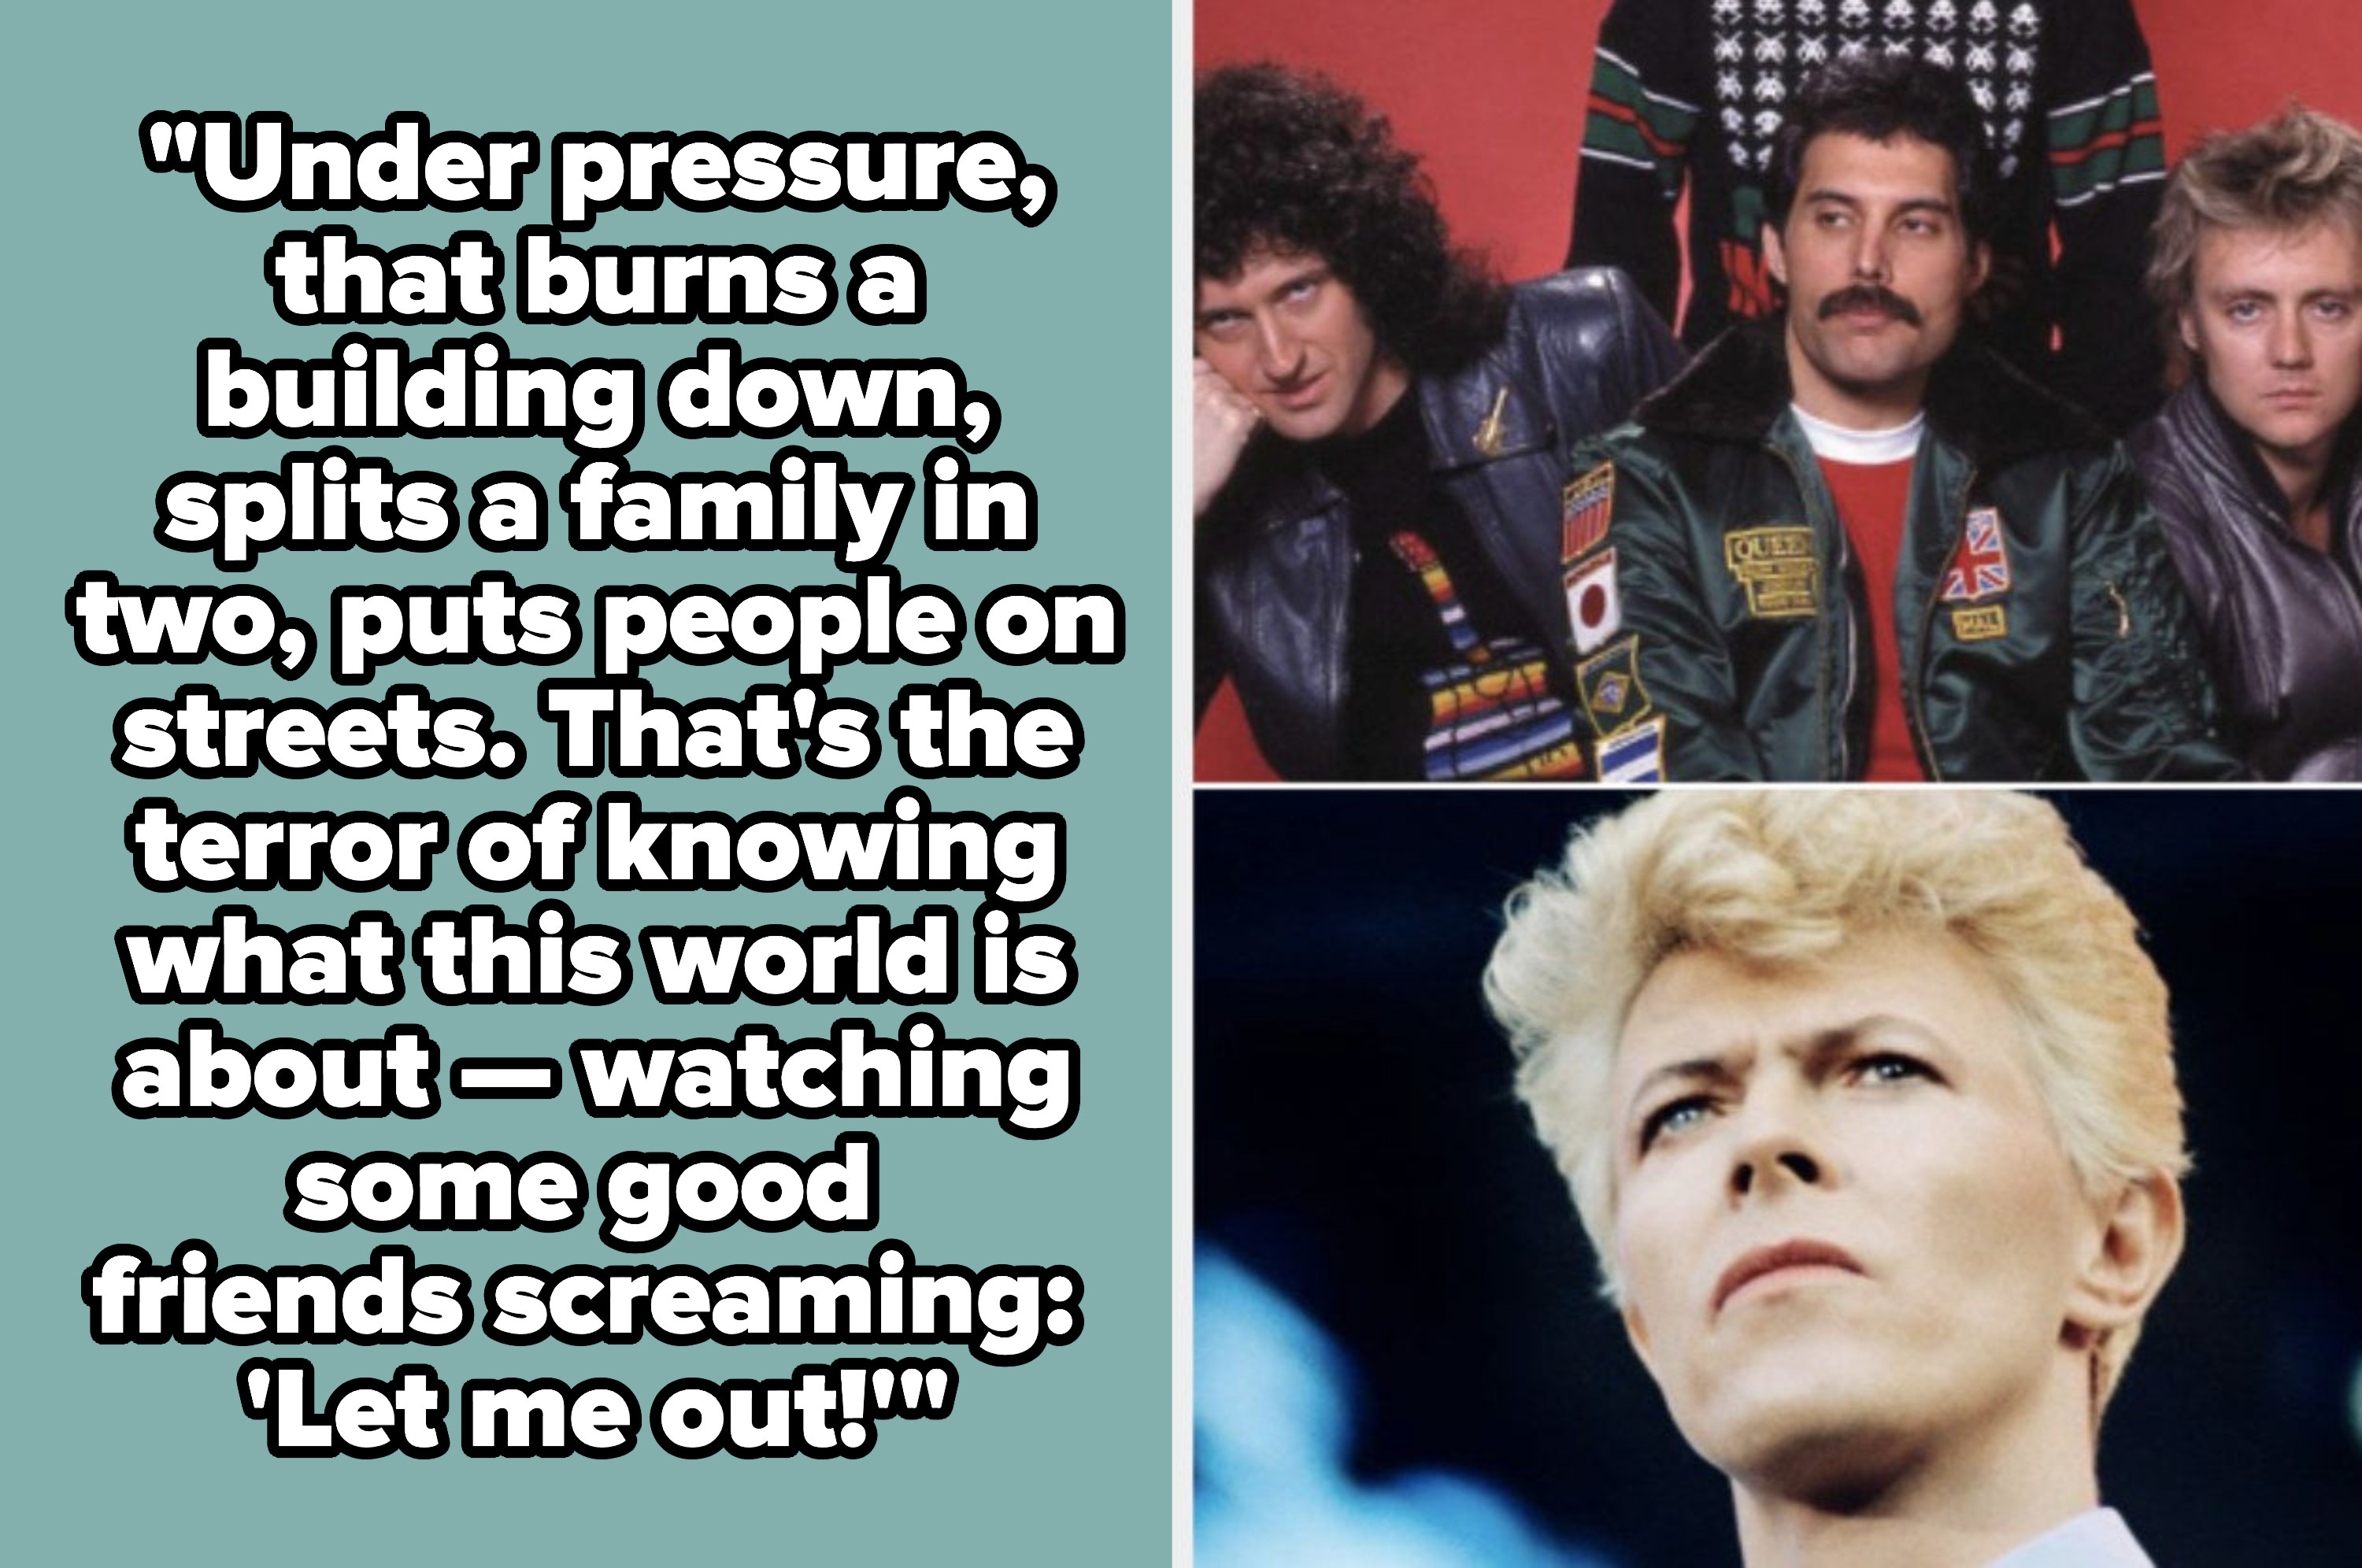 """Queen and David Bowie singing: """"Under pressure, that burns a building down, splits a family in two, puts people on streets. That's the terror of knowing what this world is about — watching some good friends screaming: 'Let me out!'"""""""